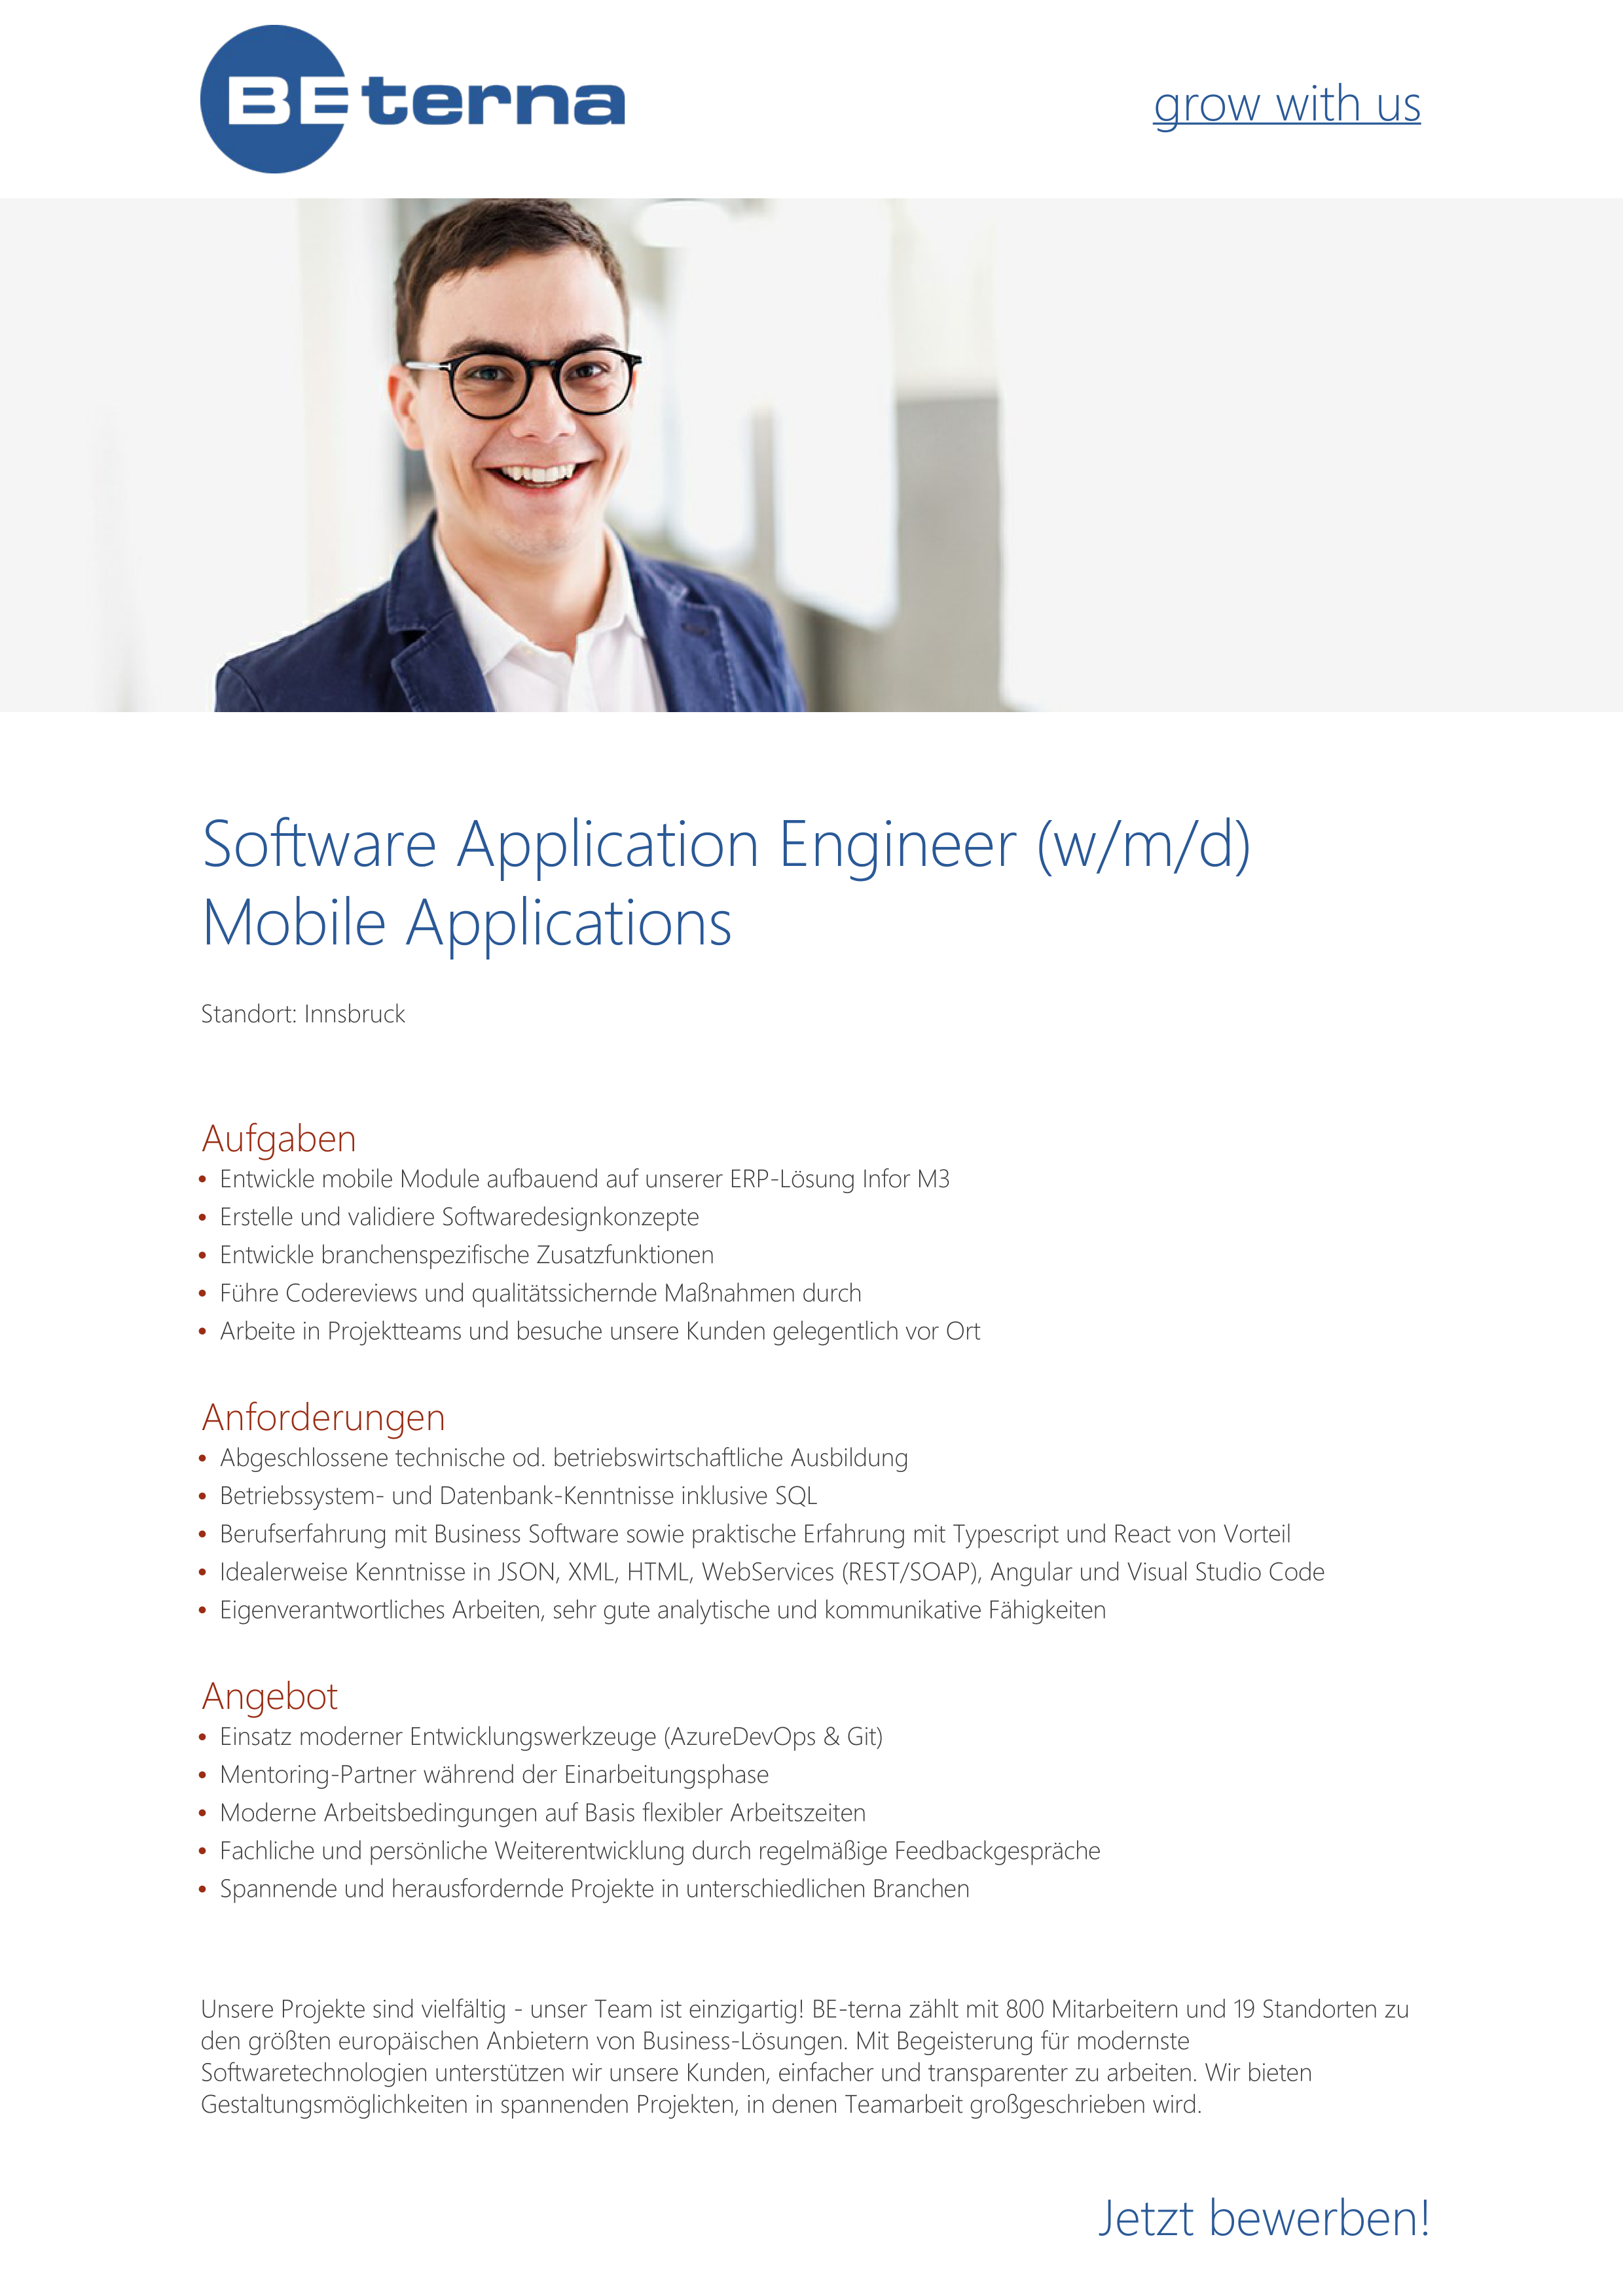 Software Application Engineer (w/m/d), Mobile Applications